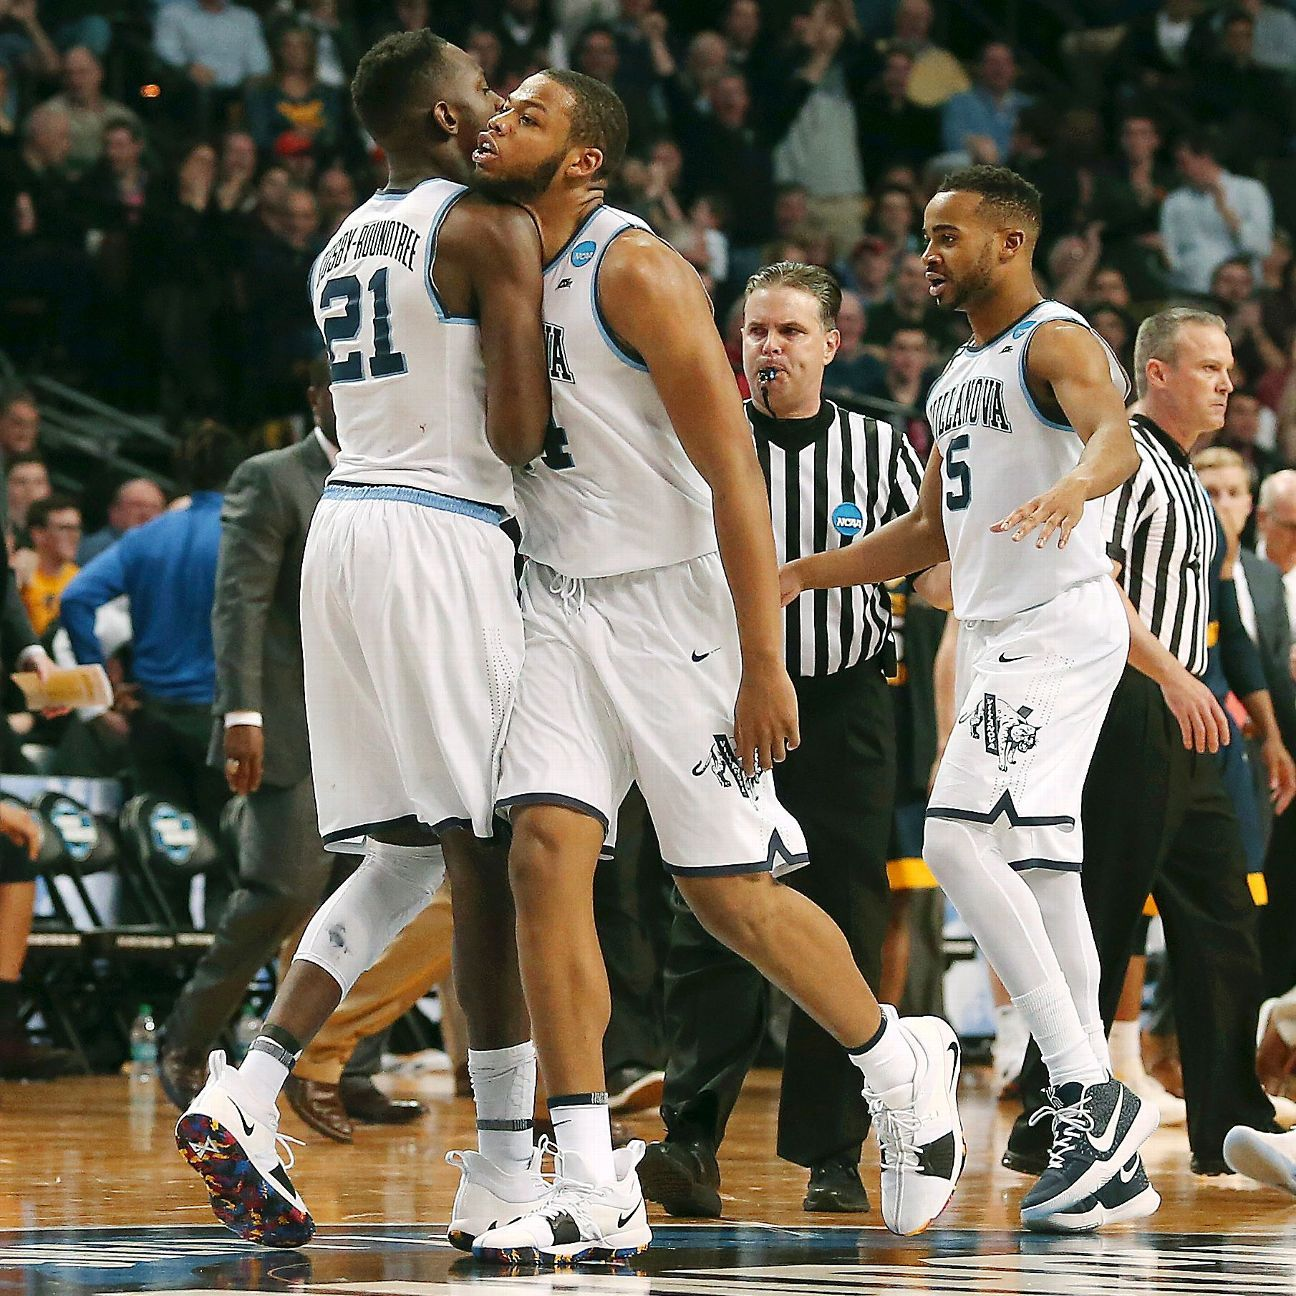 Everything you need to know for Sunday's Elite Eight games